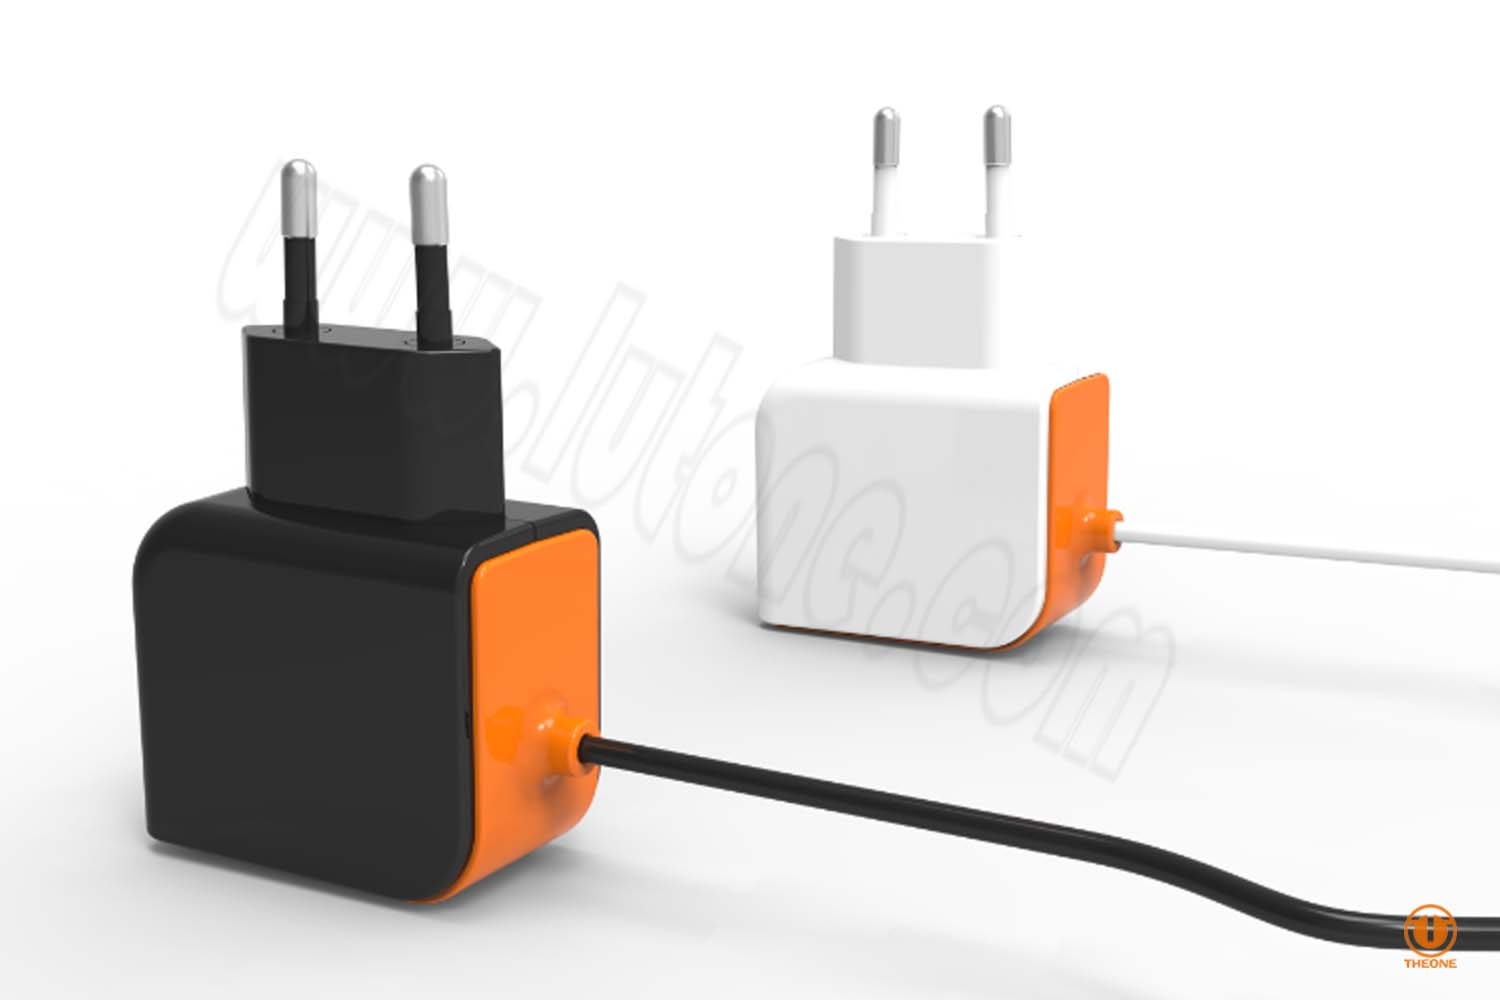 tc02b1-2 wired wall charger